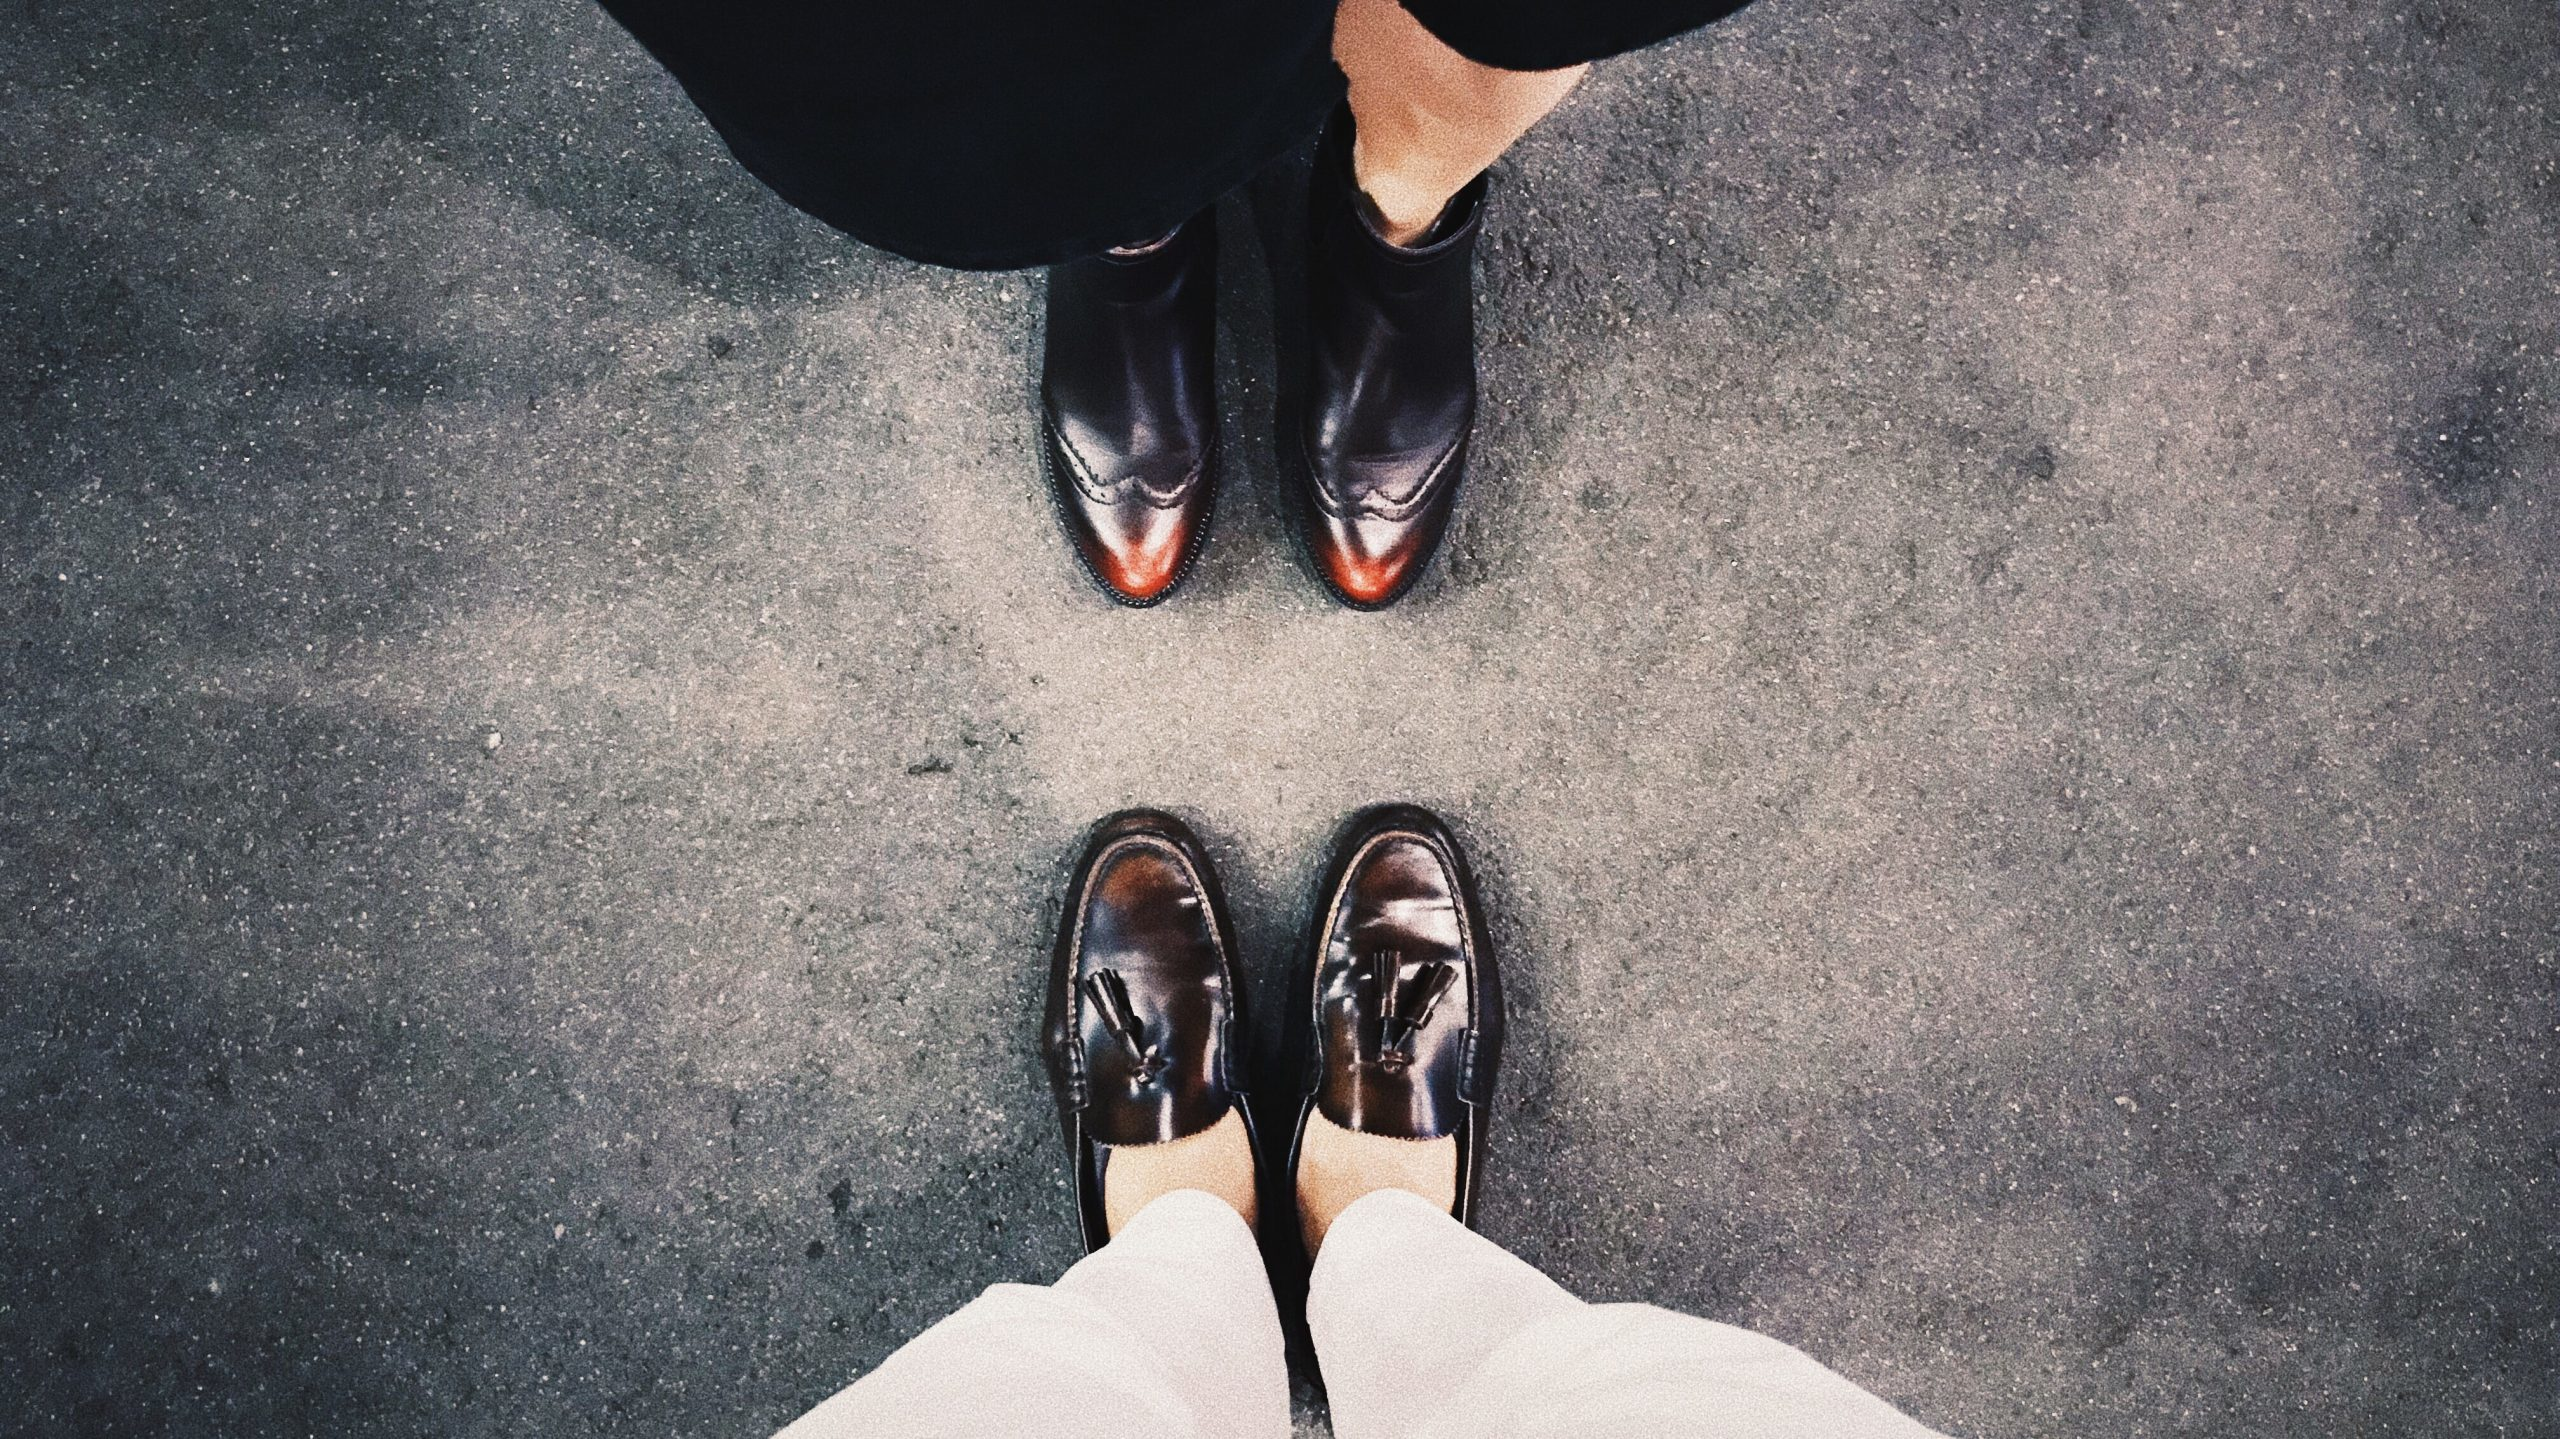 patina on shoes